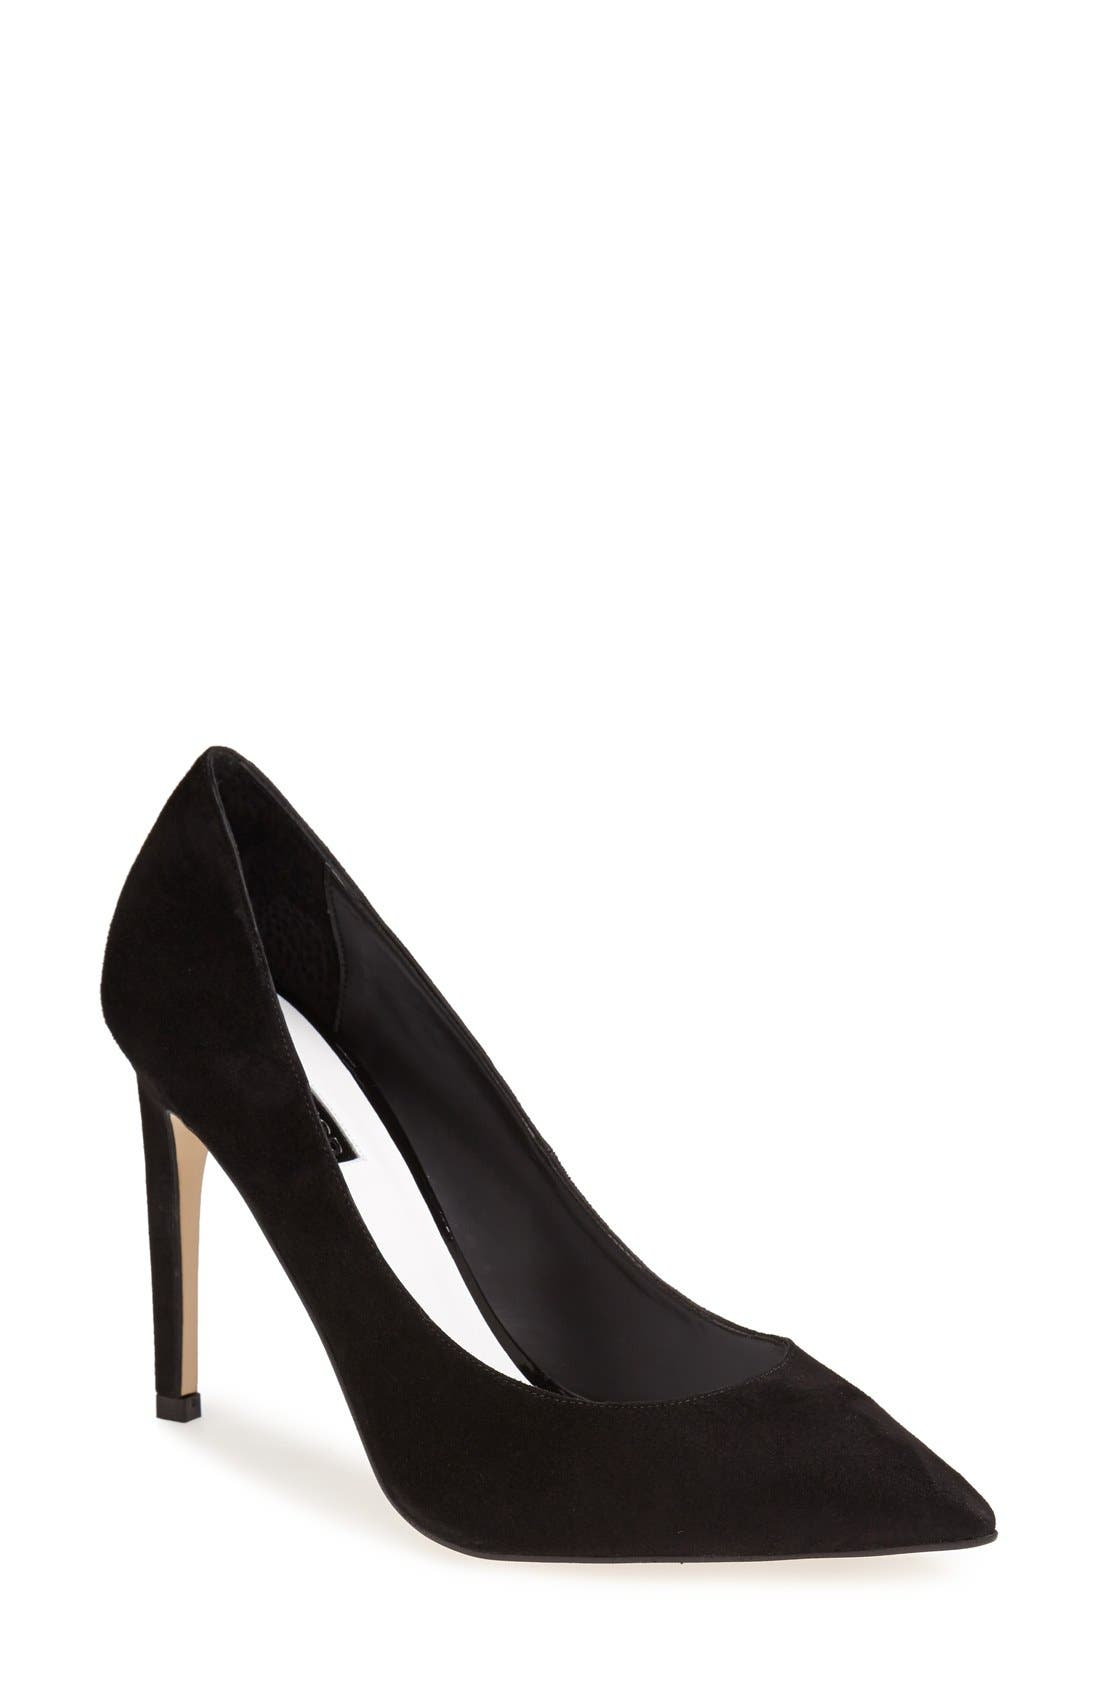 Alternate Image 1 Selected - Topshop 'Glory' Pointy Toe Suede Pump (Women)